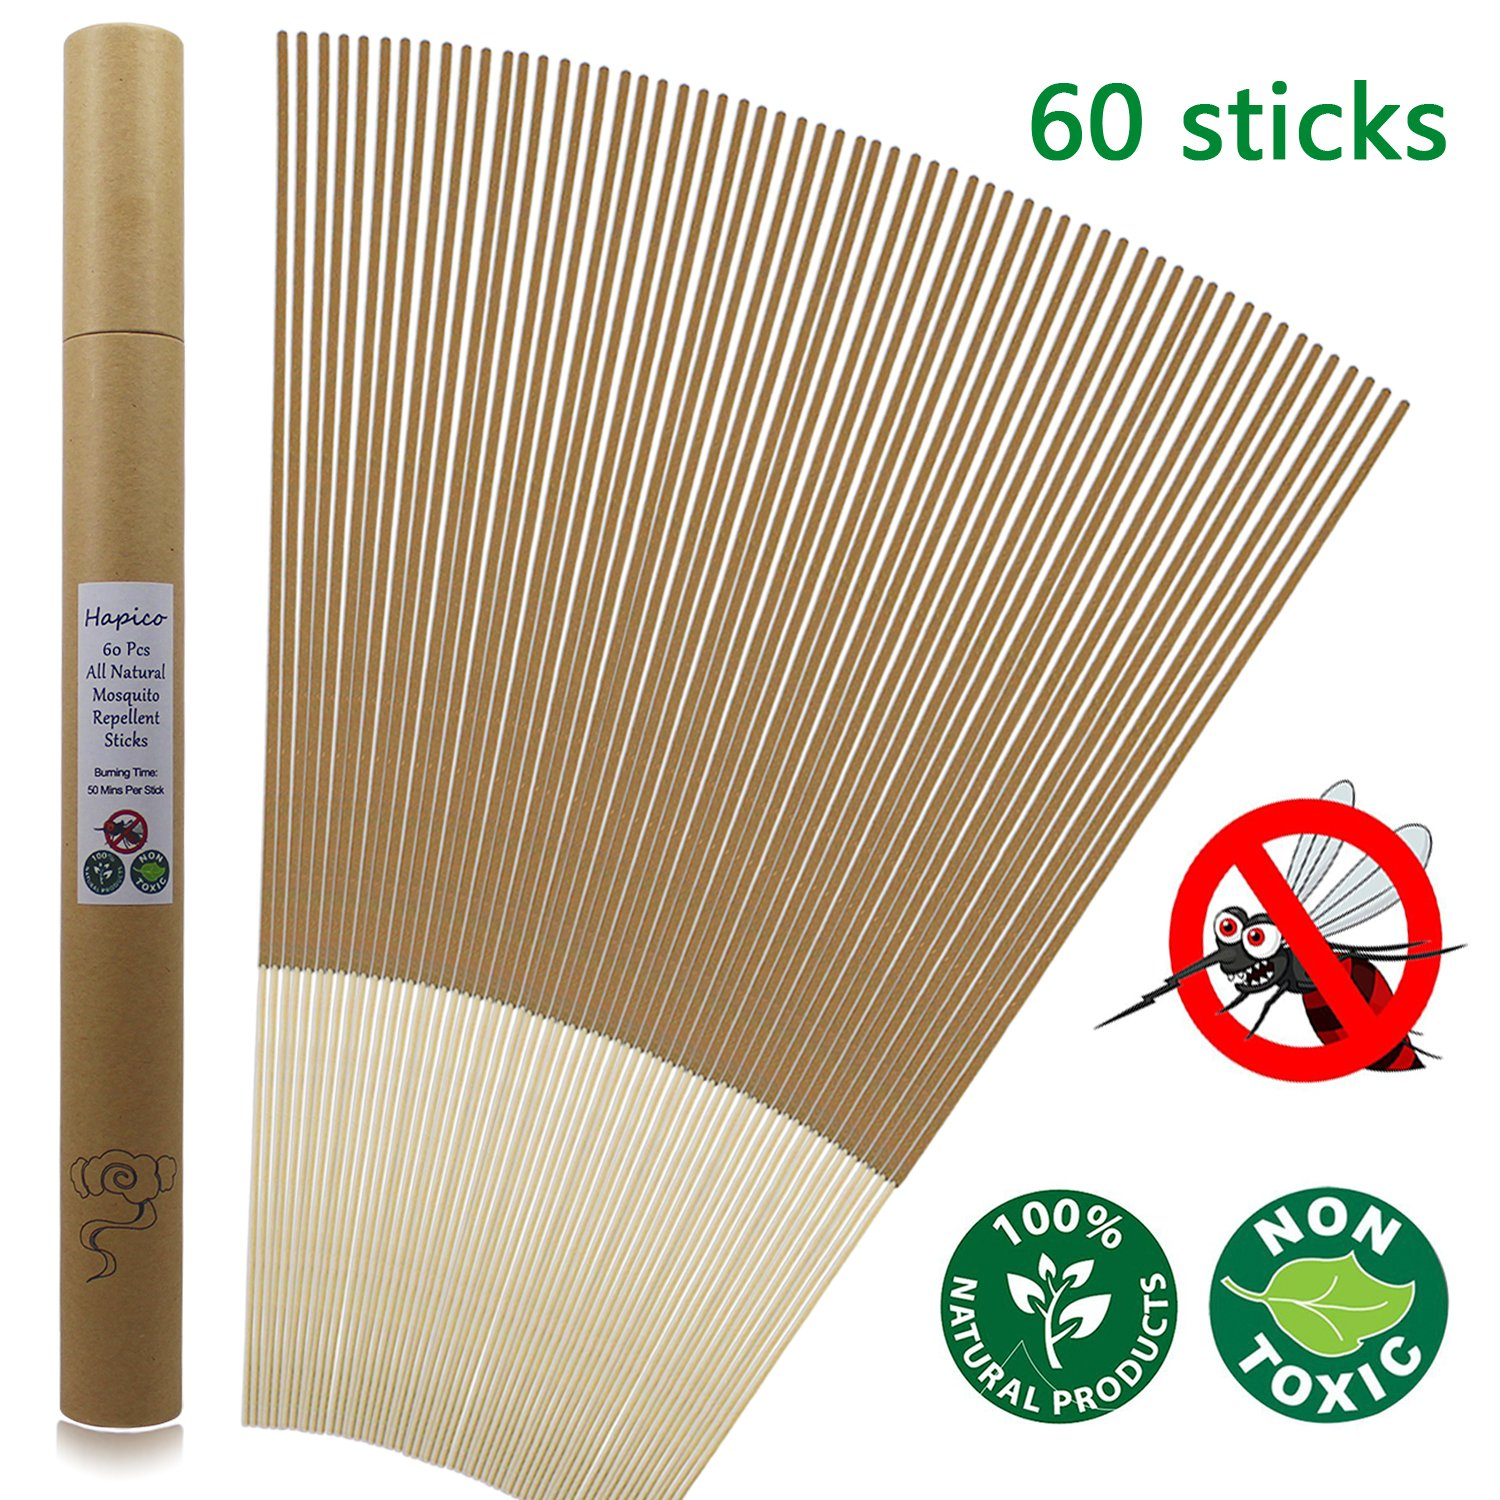 Hapico Mosquito Repellent Sticks, All Natural Citronella Mosquitoes Incense Sticks Outdoor Bug Resistant Wipes Insect- Non Toxic, Eco Friendly- Lasting 1 Hour per Stick, for Garden Yard Hiking Camping BBQ Household Use- (Pack of 60) Yingxiangyuan